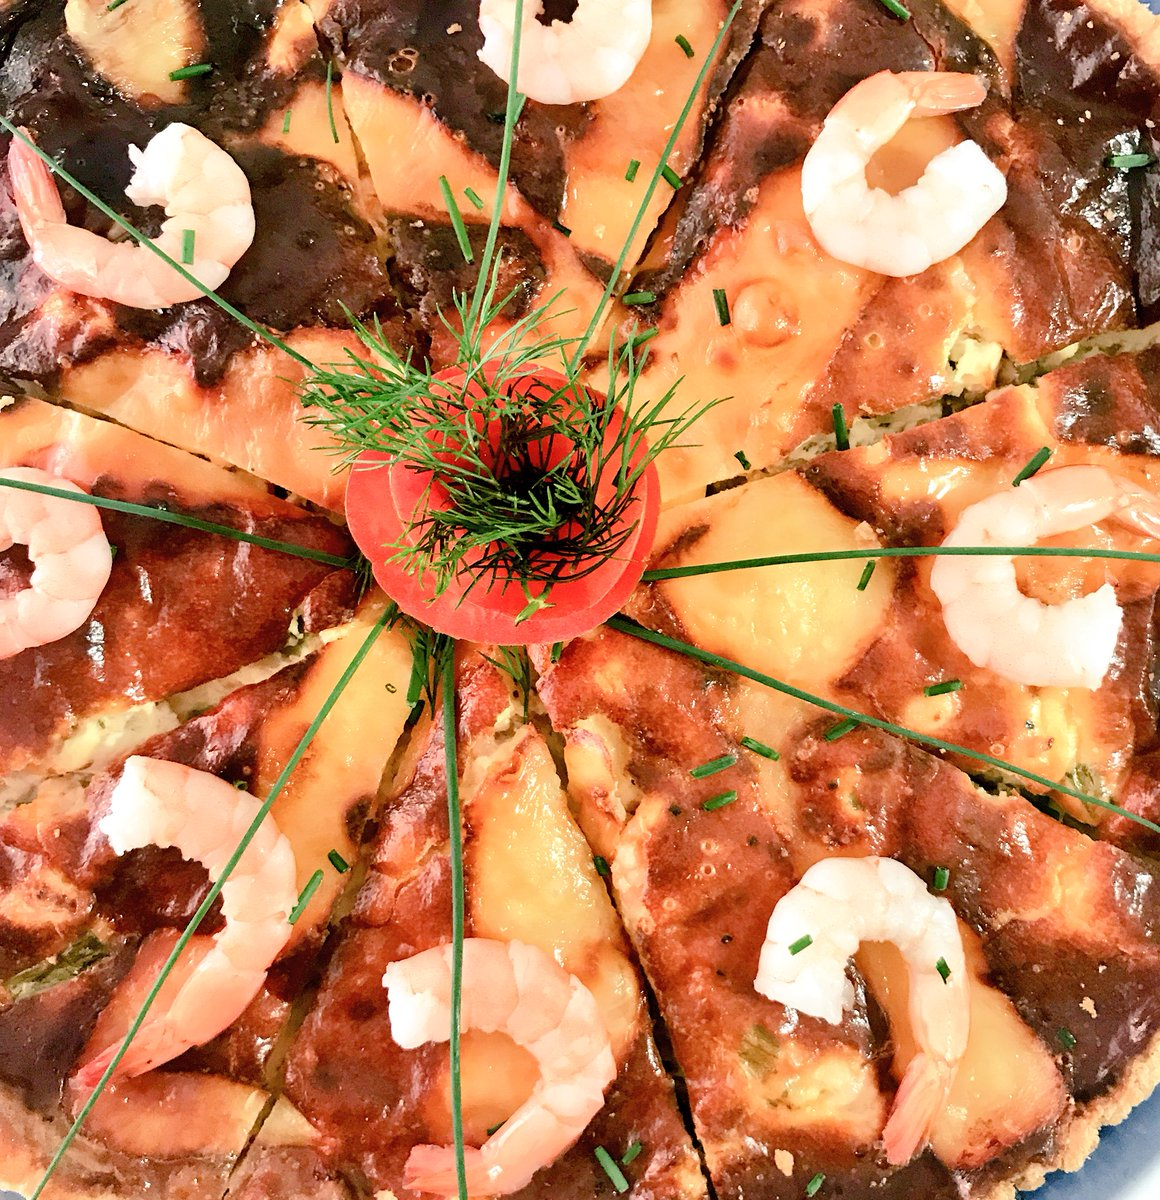 The dress agency widcombe bath - New Glory Quiche King Prawn And Crab